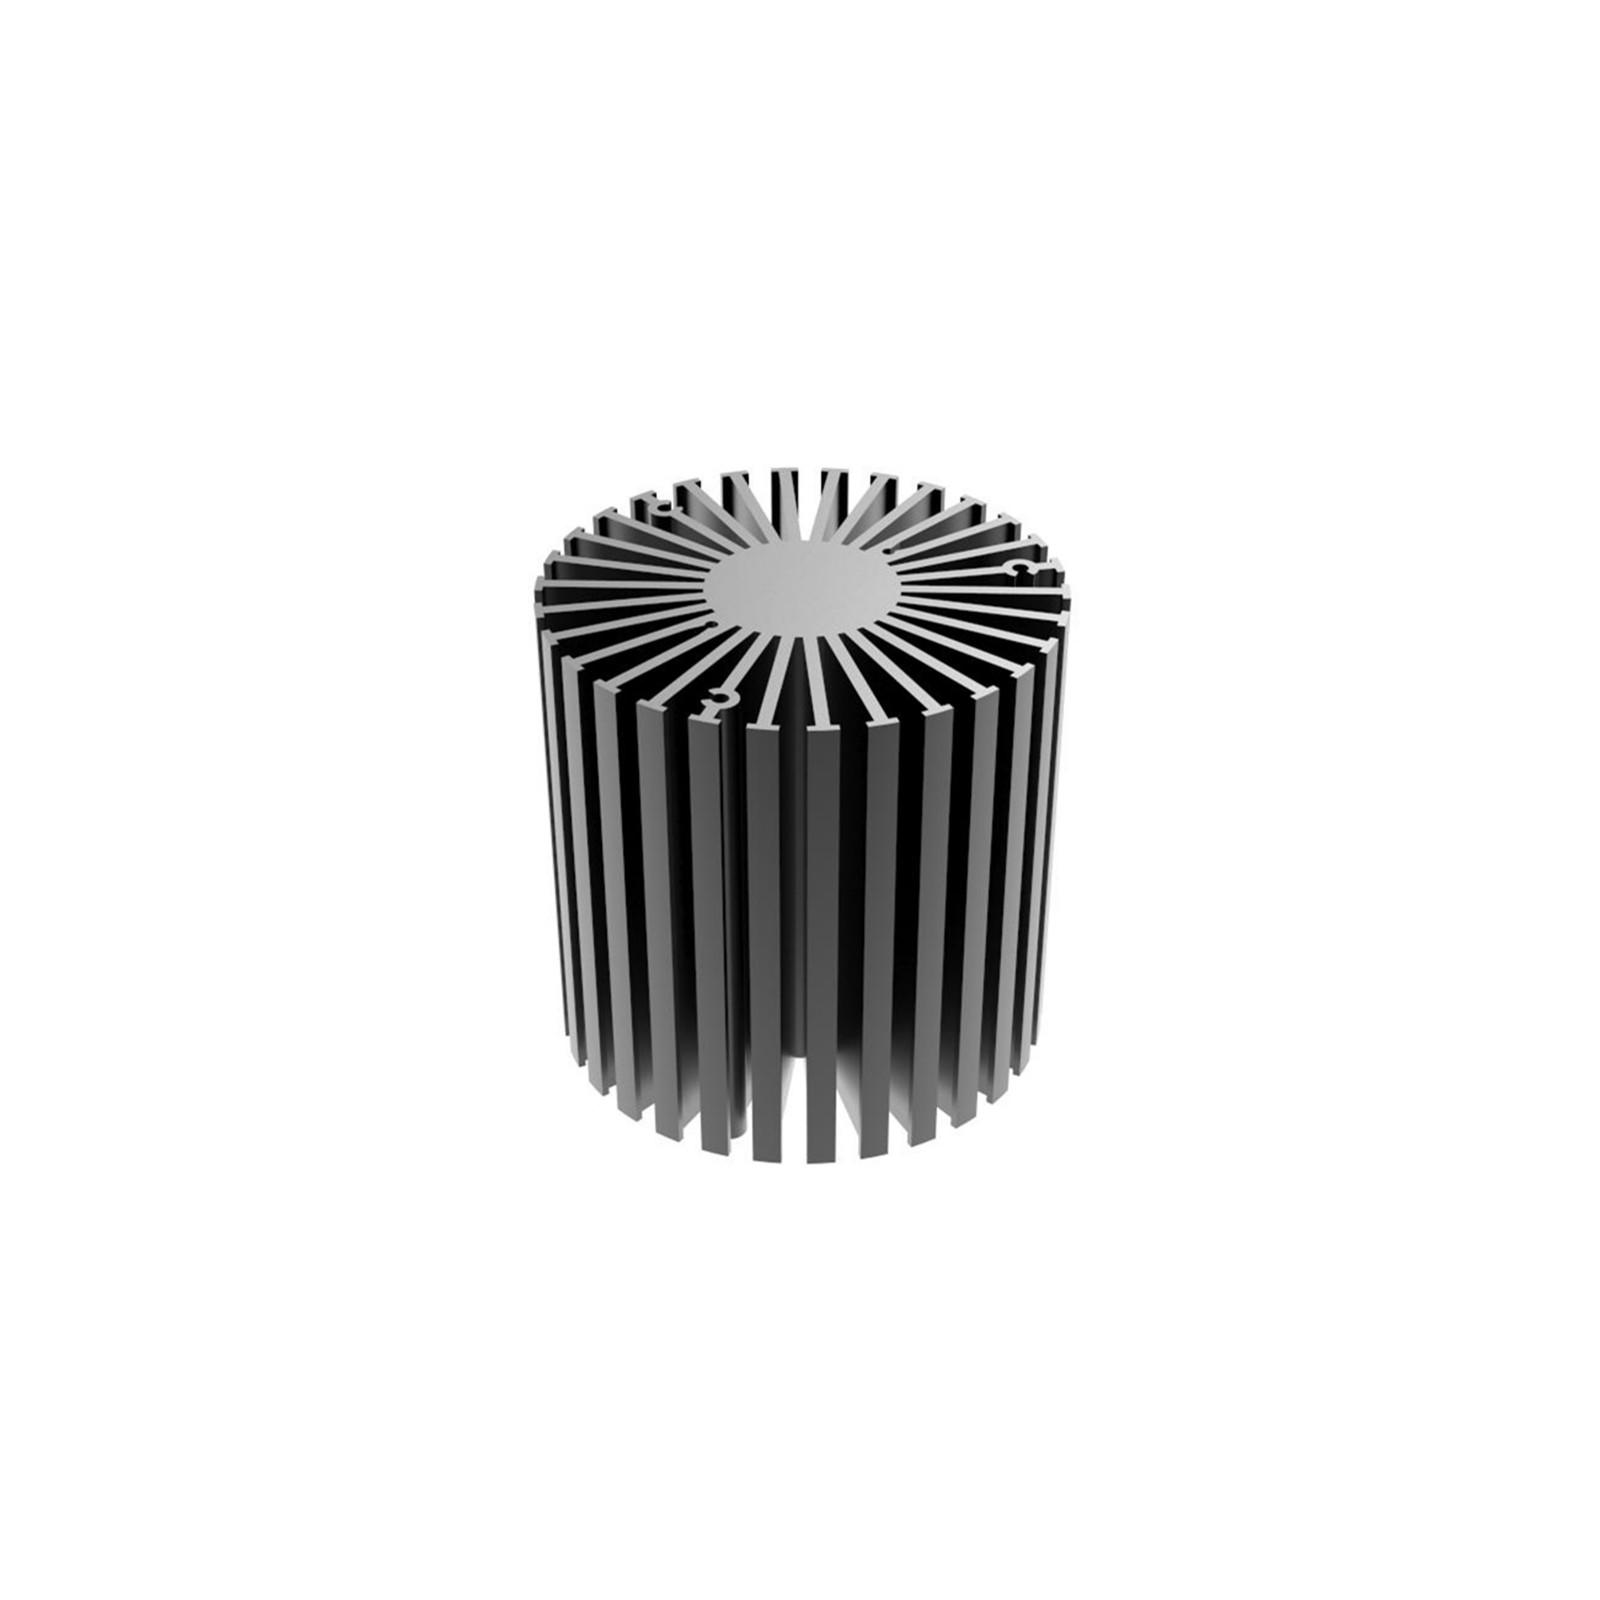 anodized mini heatsink simpoled58505870 design for cabinet